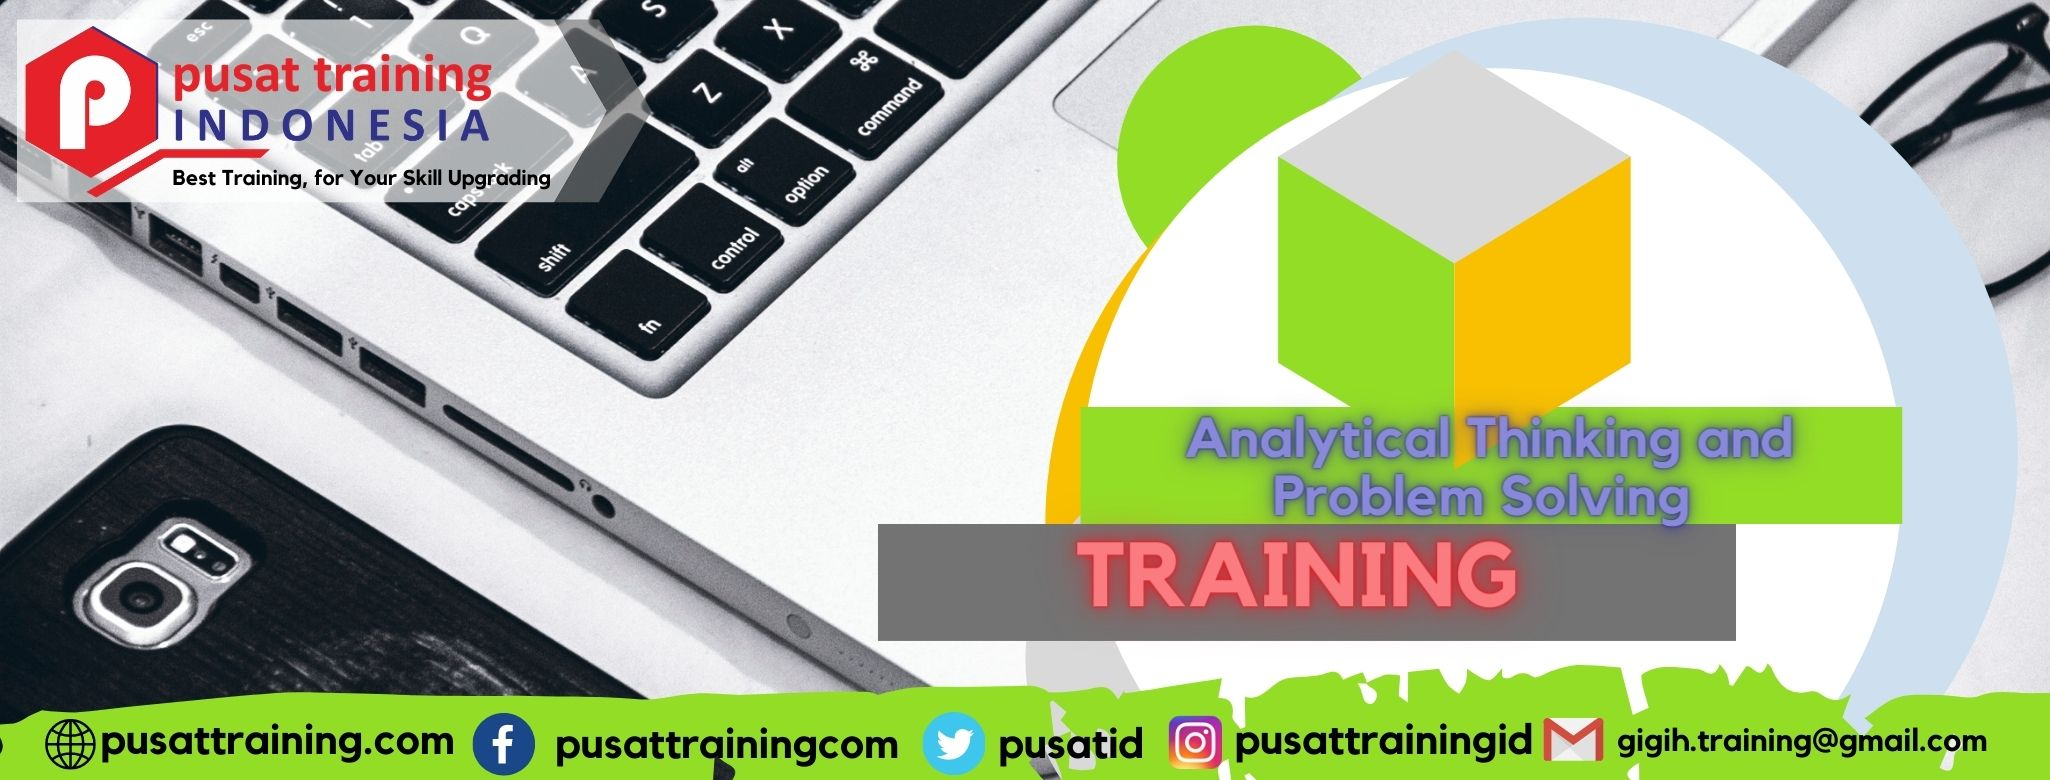 Analytical Thinking and Problem Solving Training